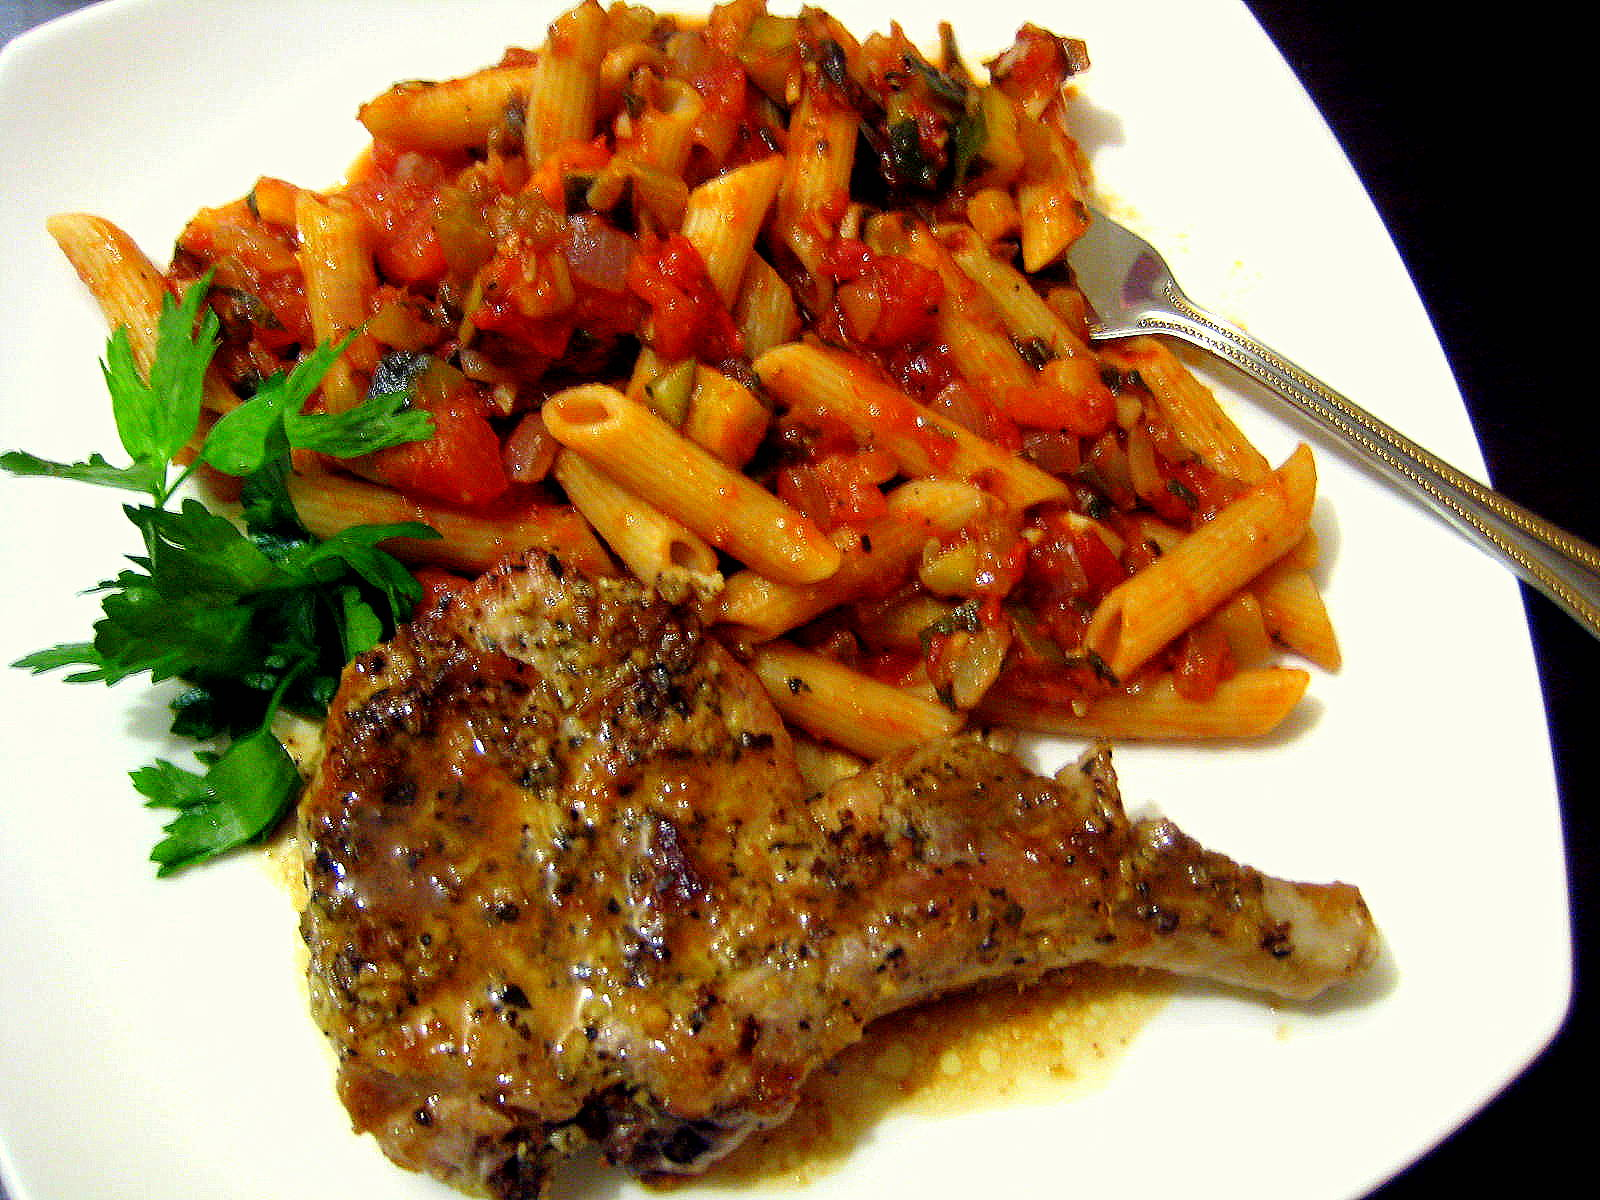 Food Tastes Yummy: GREEK-STYLE PORK CHOPS